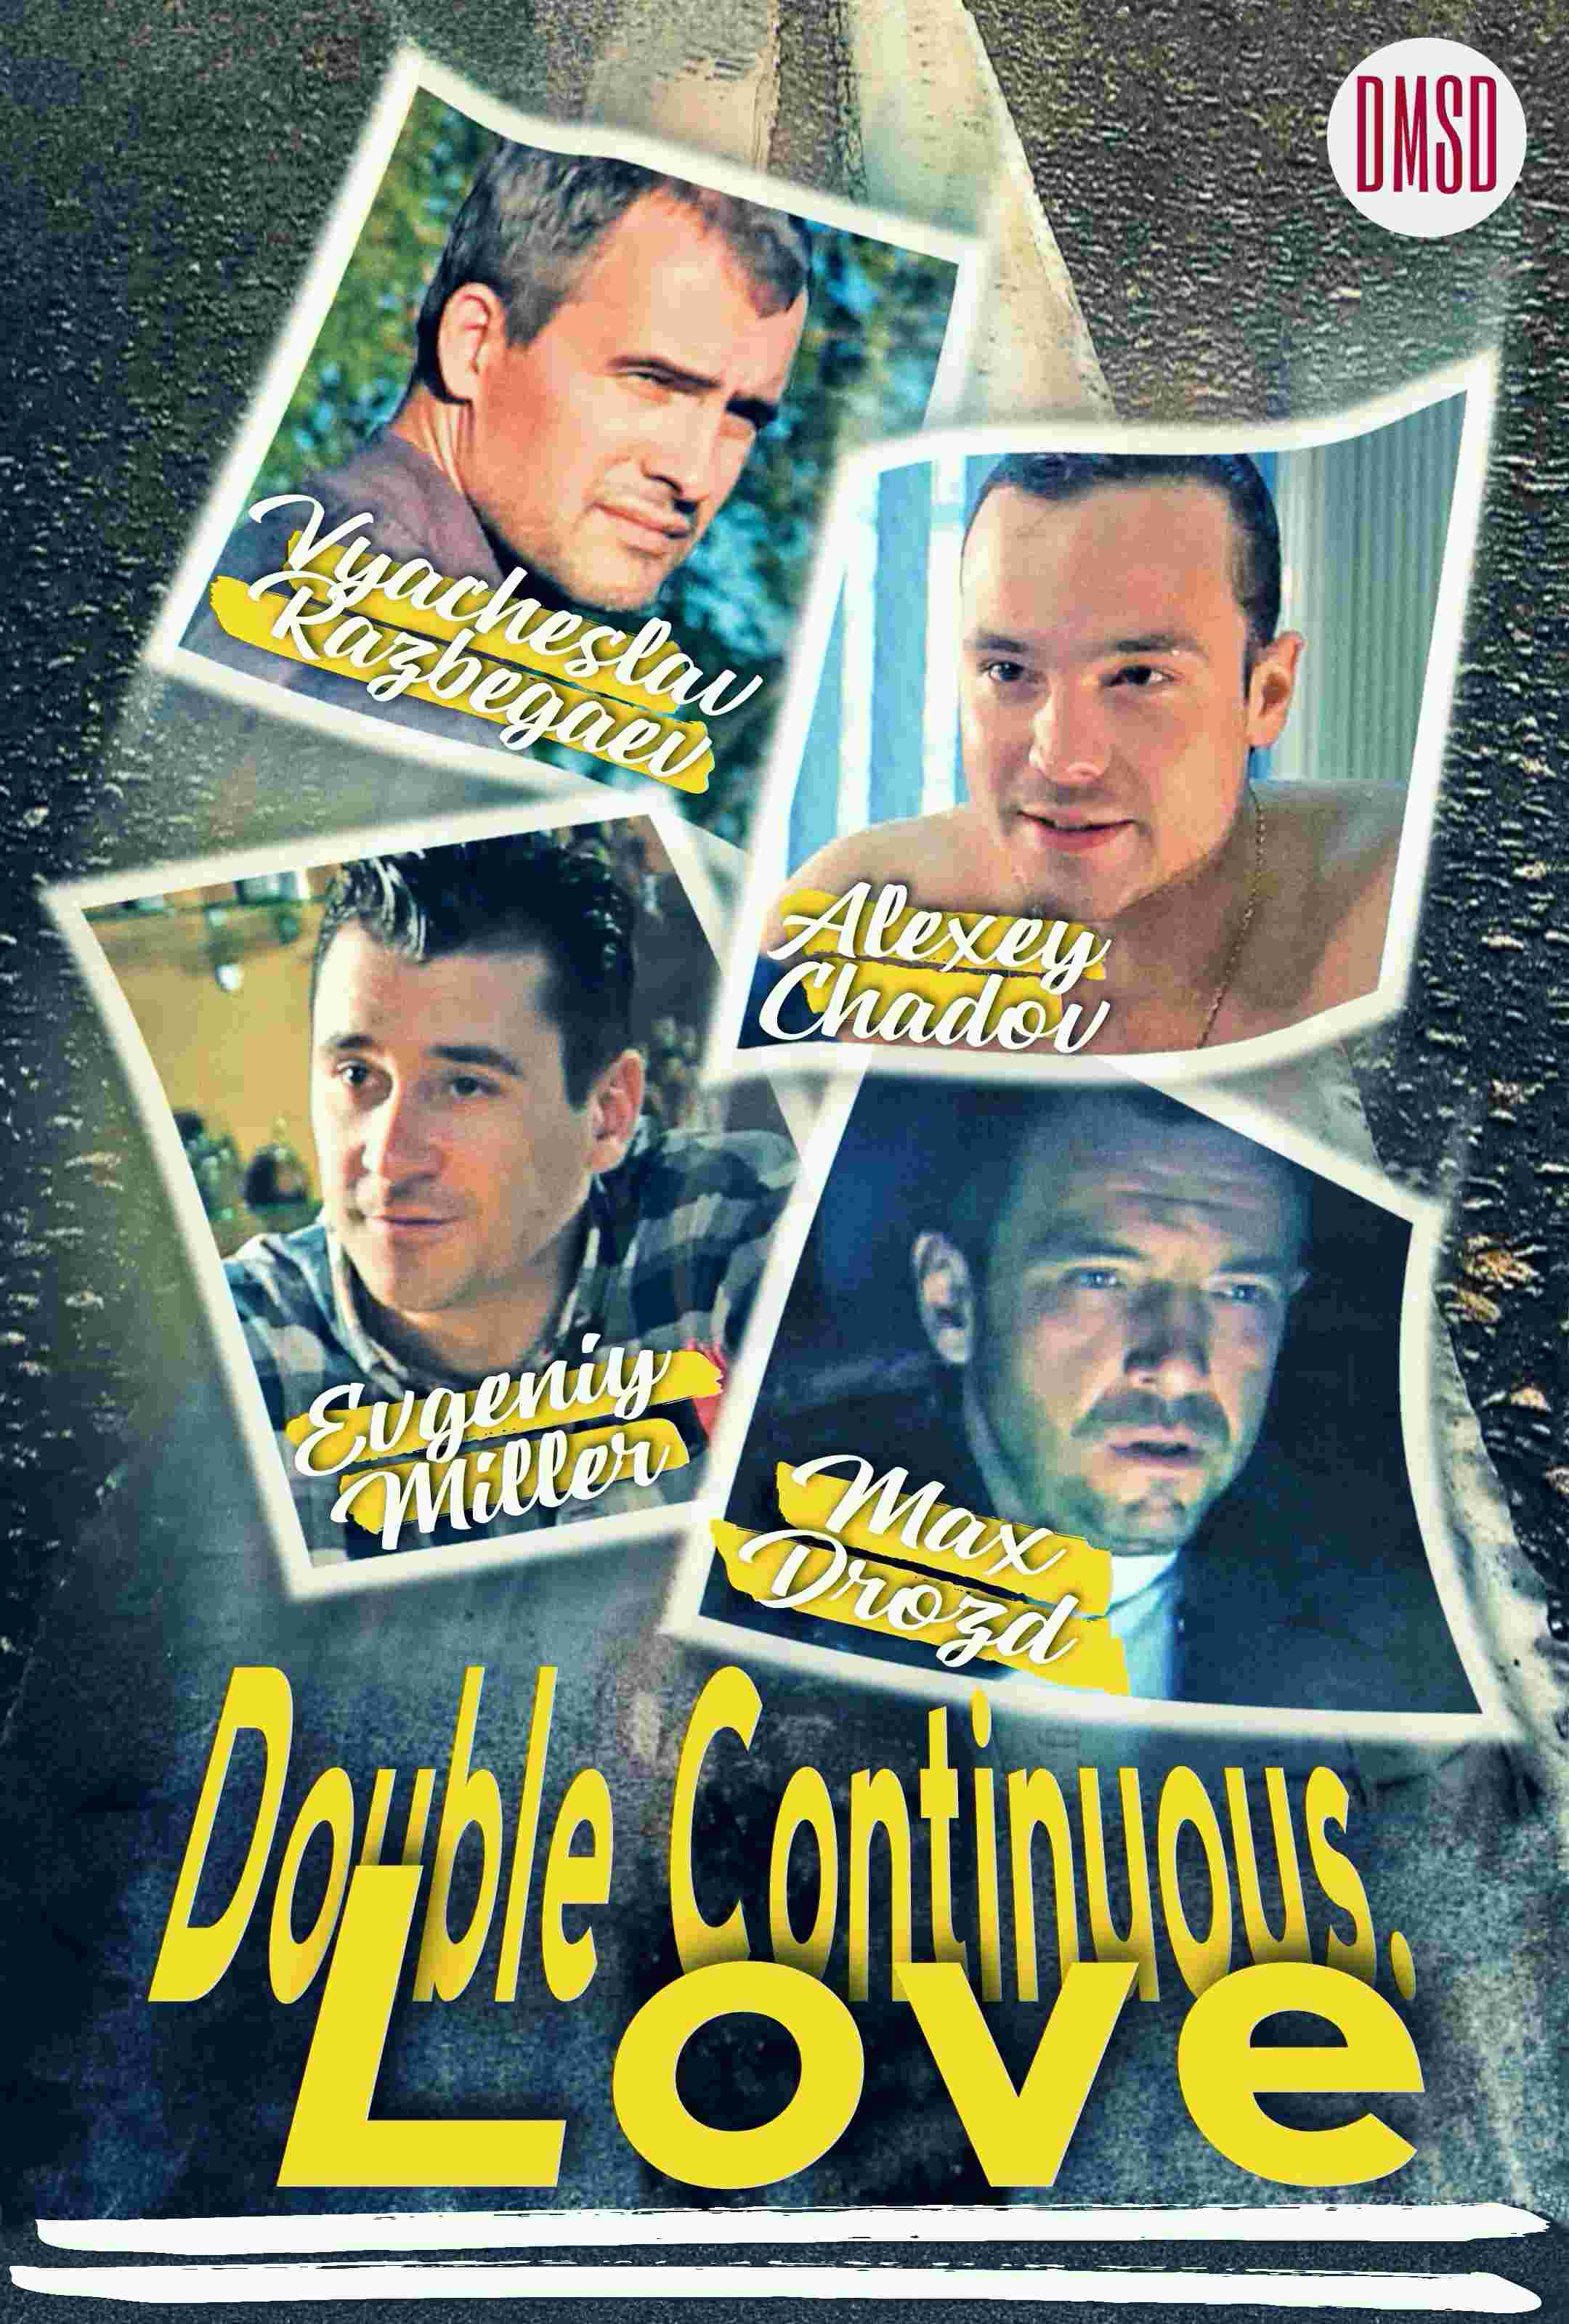 Double Continuous Love [2011]